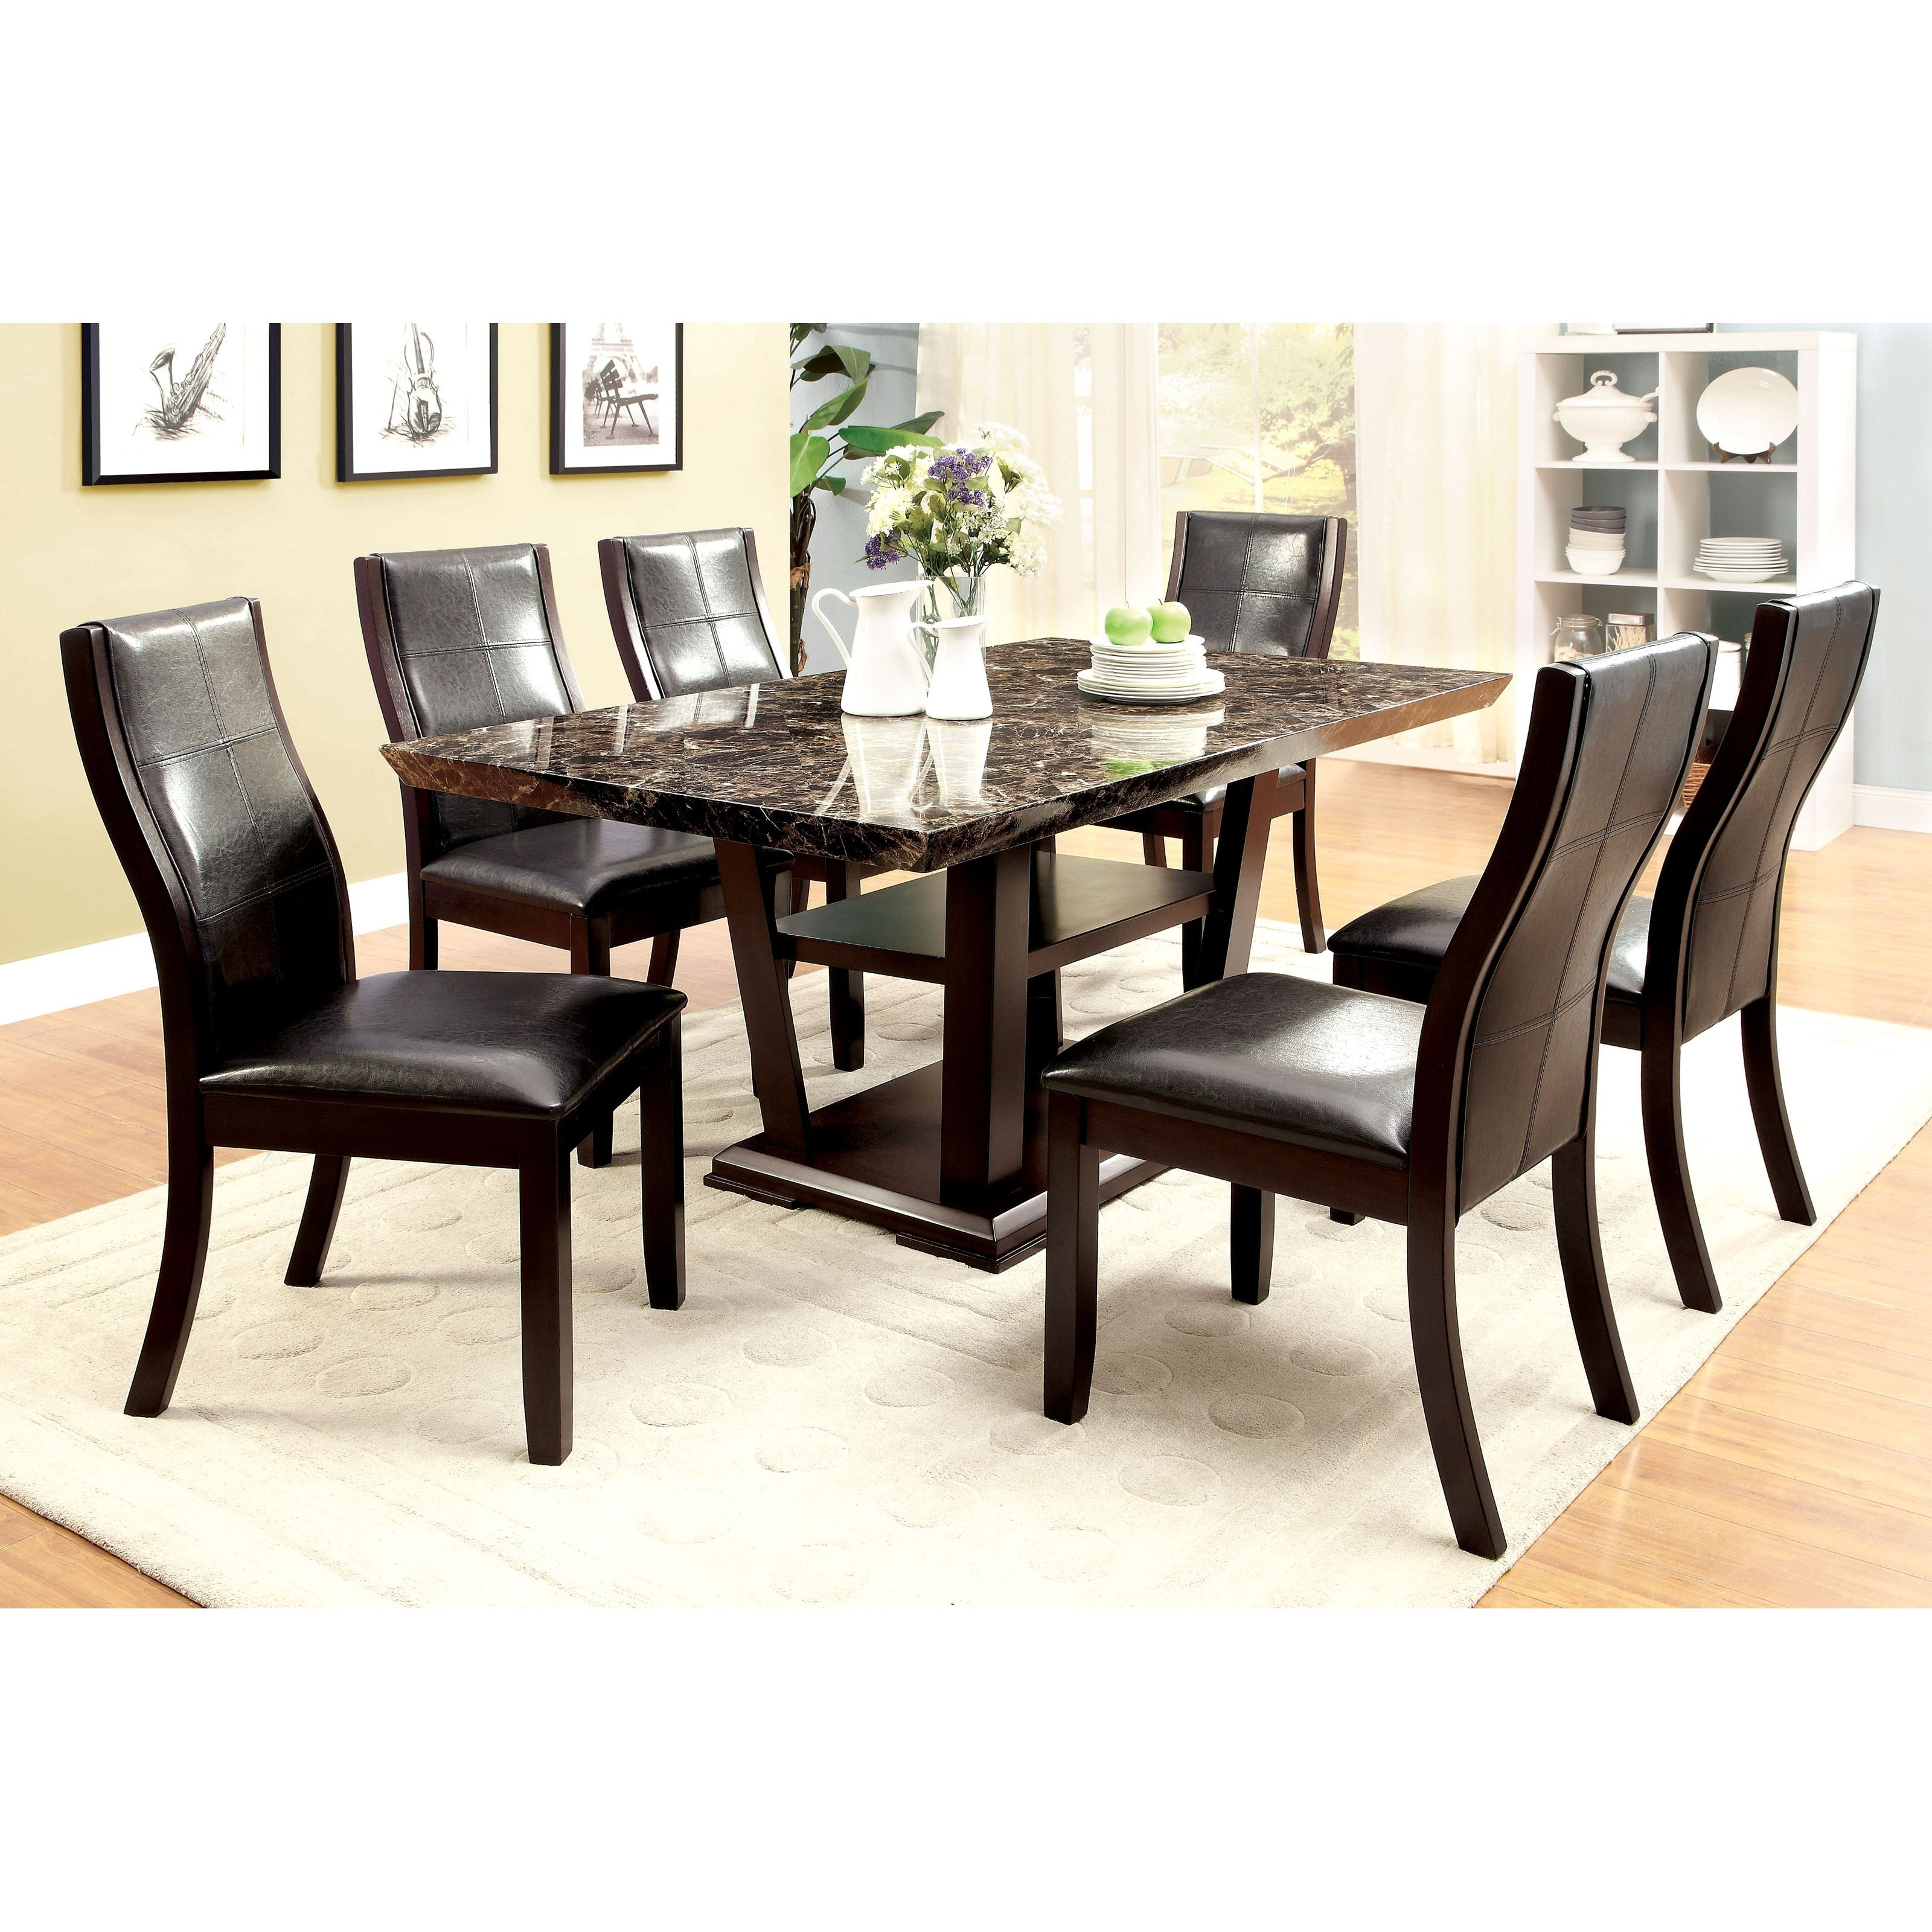 Marble Dining Tables Sets Pertaining To Fashionable Furniture Of America Newrock 7 Piece Faux Marble Dining Table Set (View 16 of 25)